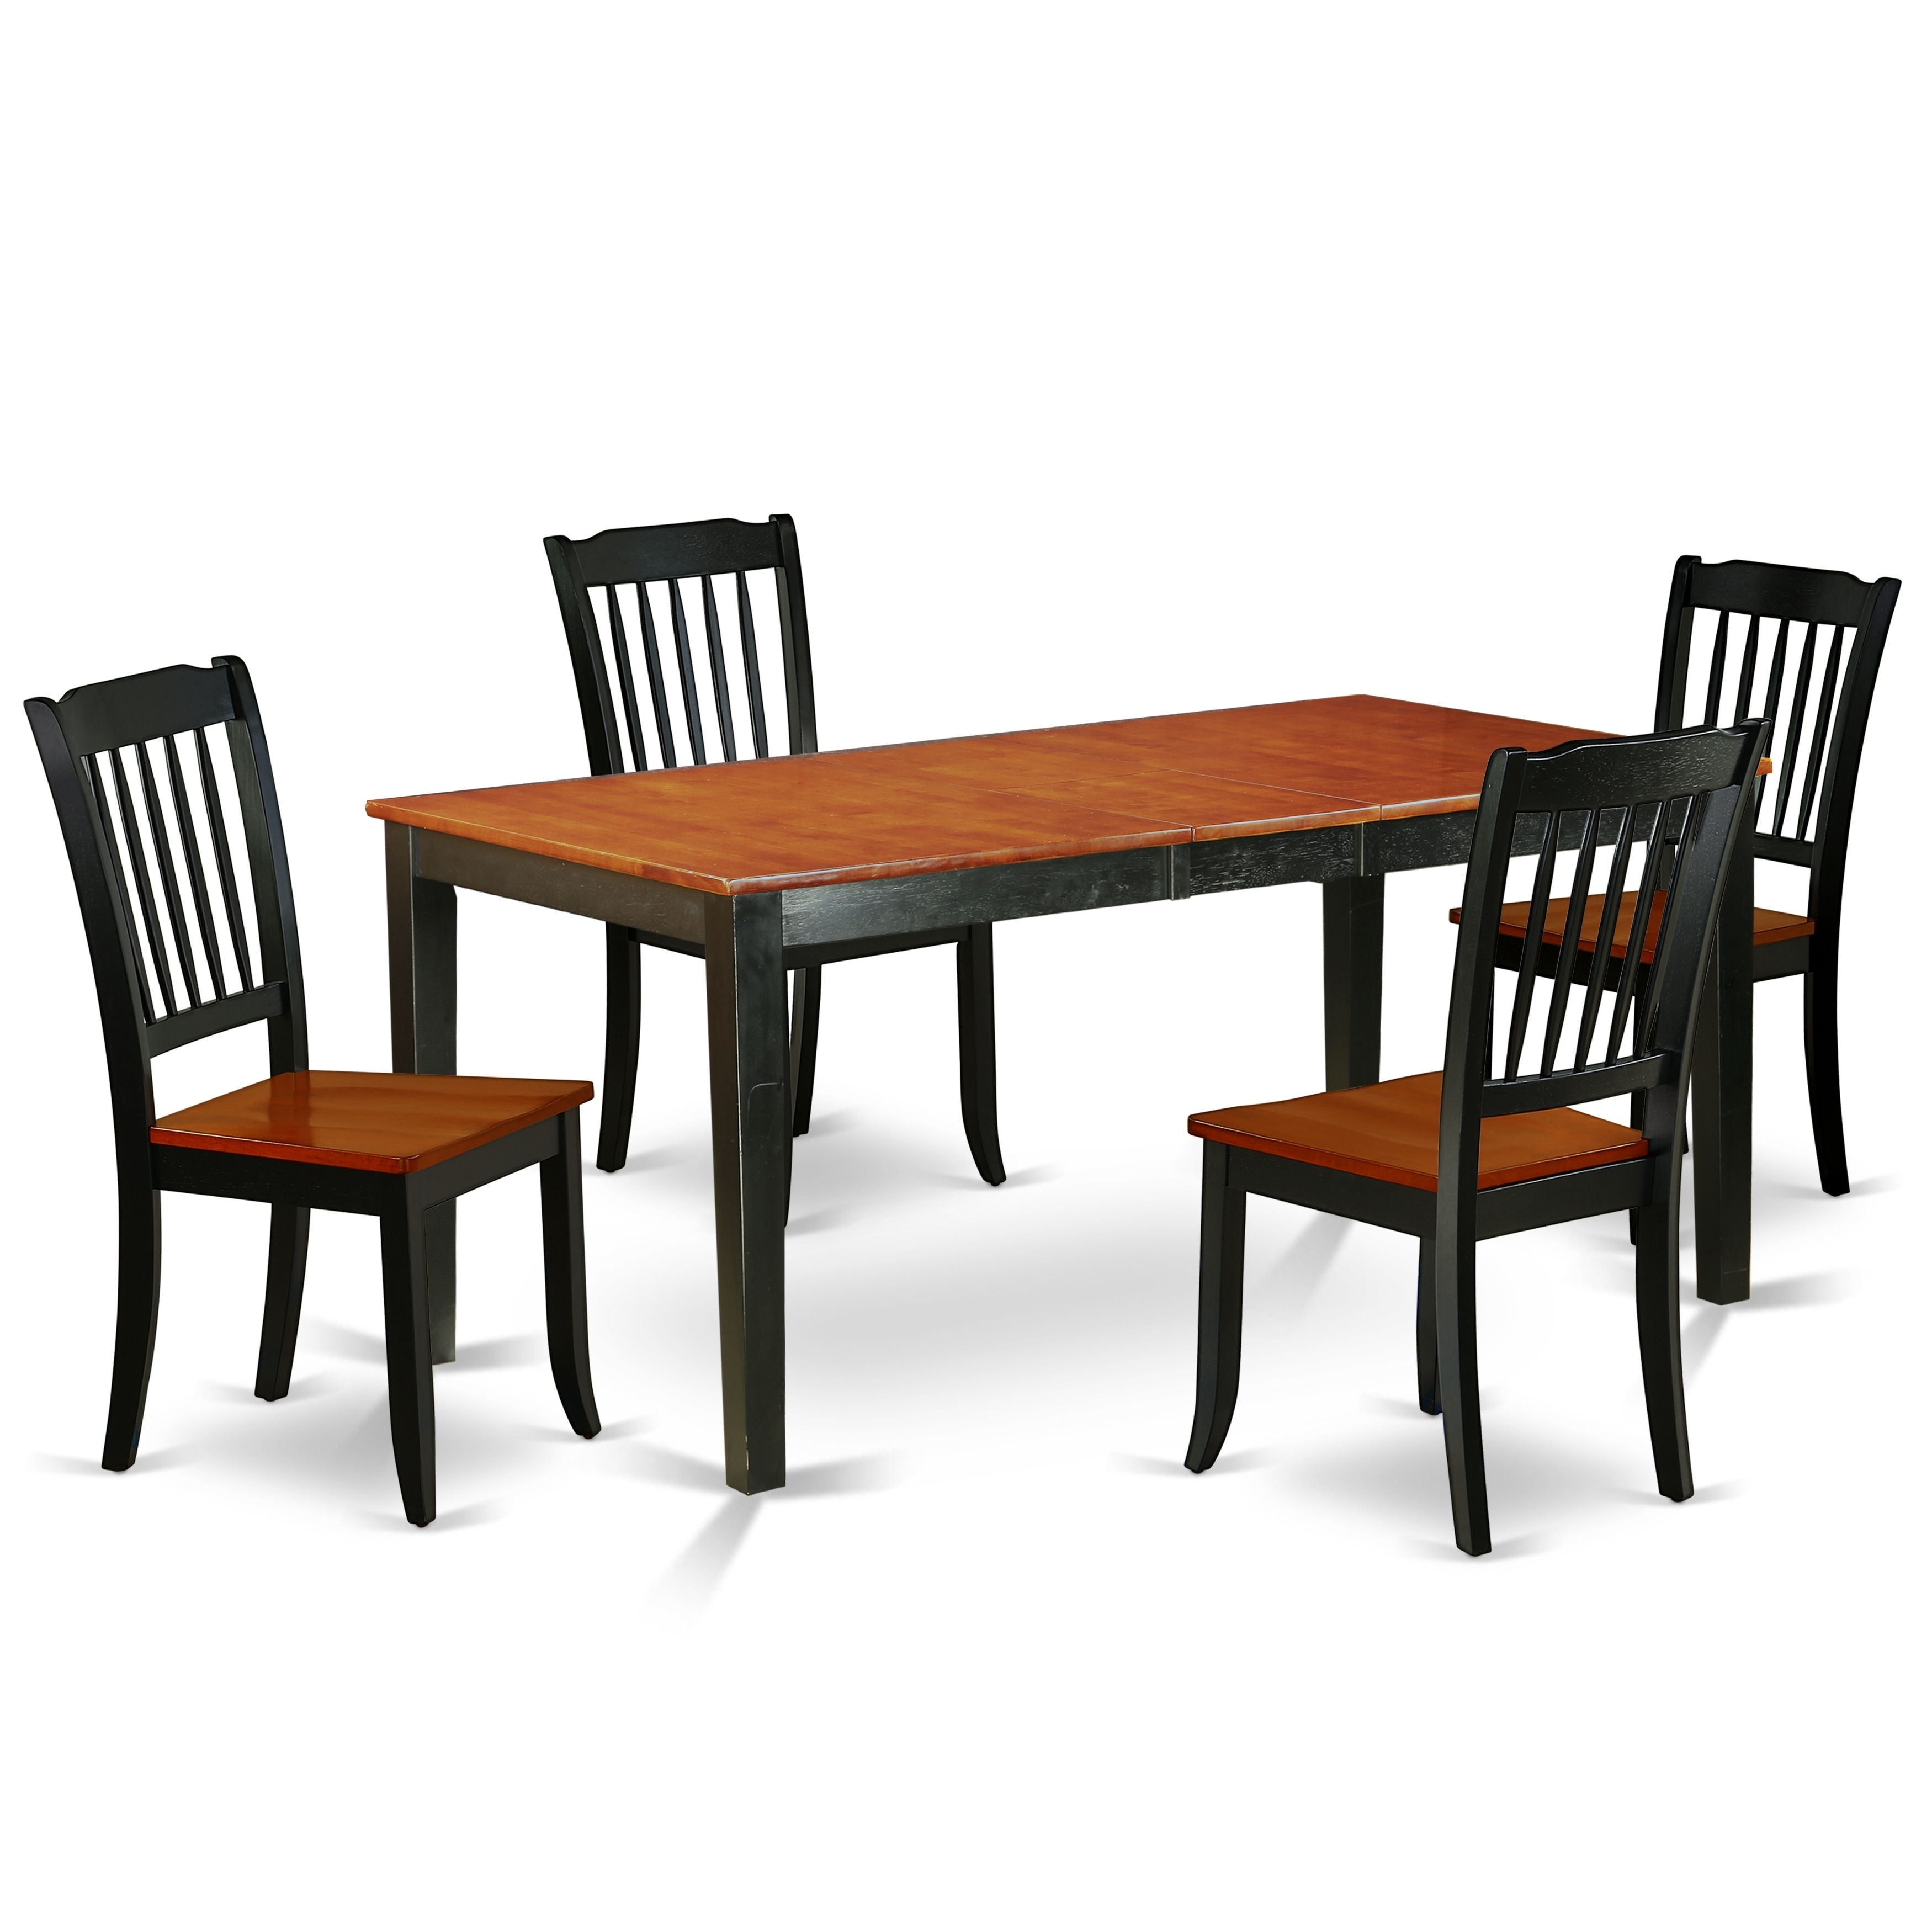 Rectangular 54 66 Inch Table With 12 Leaf And 4 Vertical Slatted Chairs Number Of Option